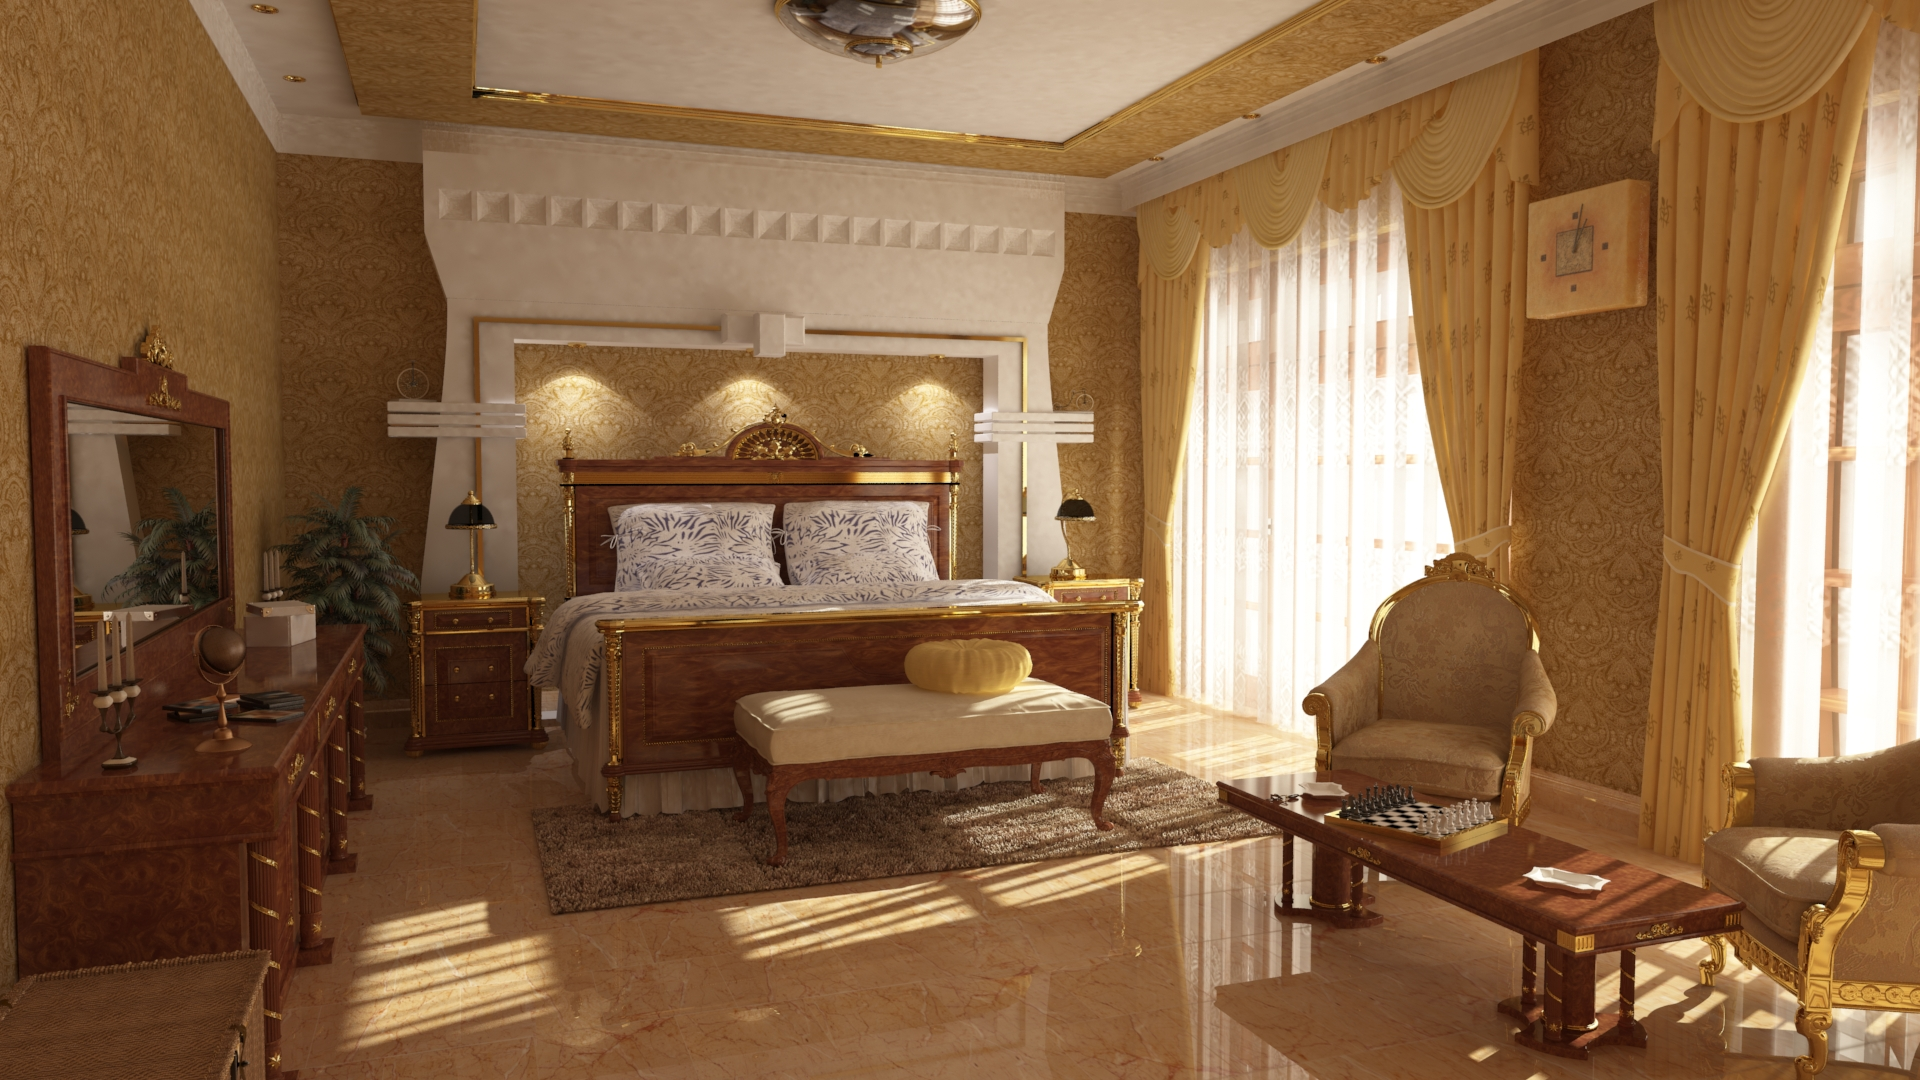 3d Wallpaper For Home Wall Bangalore Room Hd Wallpaper Background Image 1920x1080 Id